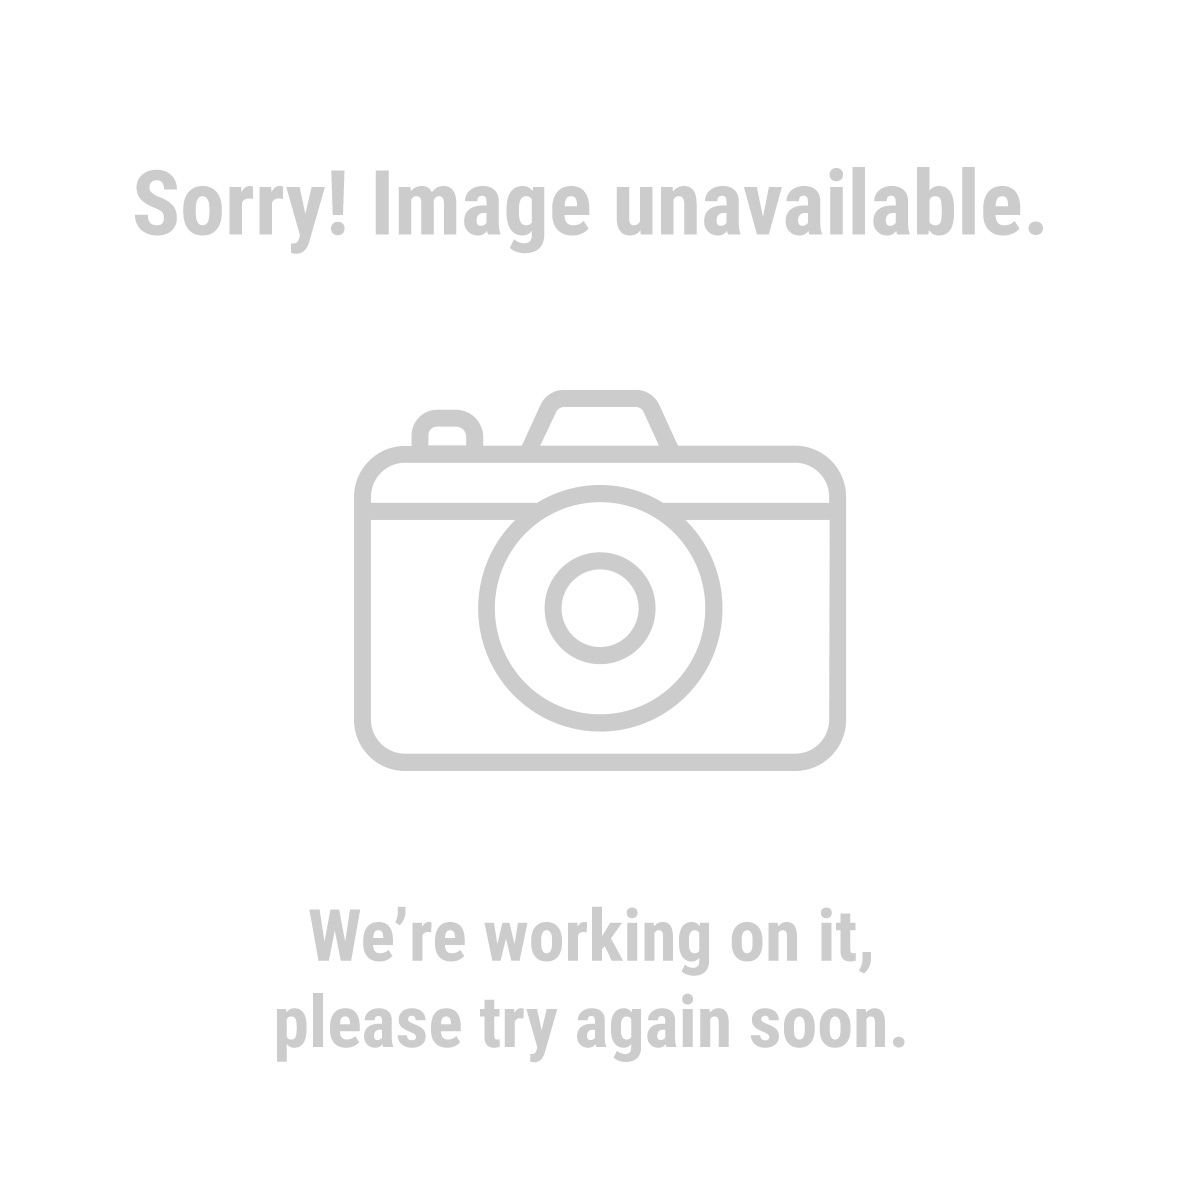 2628 Cycle Tree Compact Bike Storage